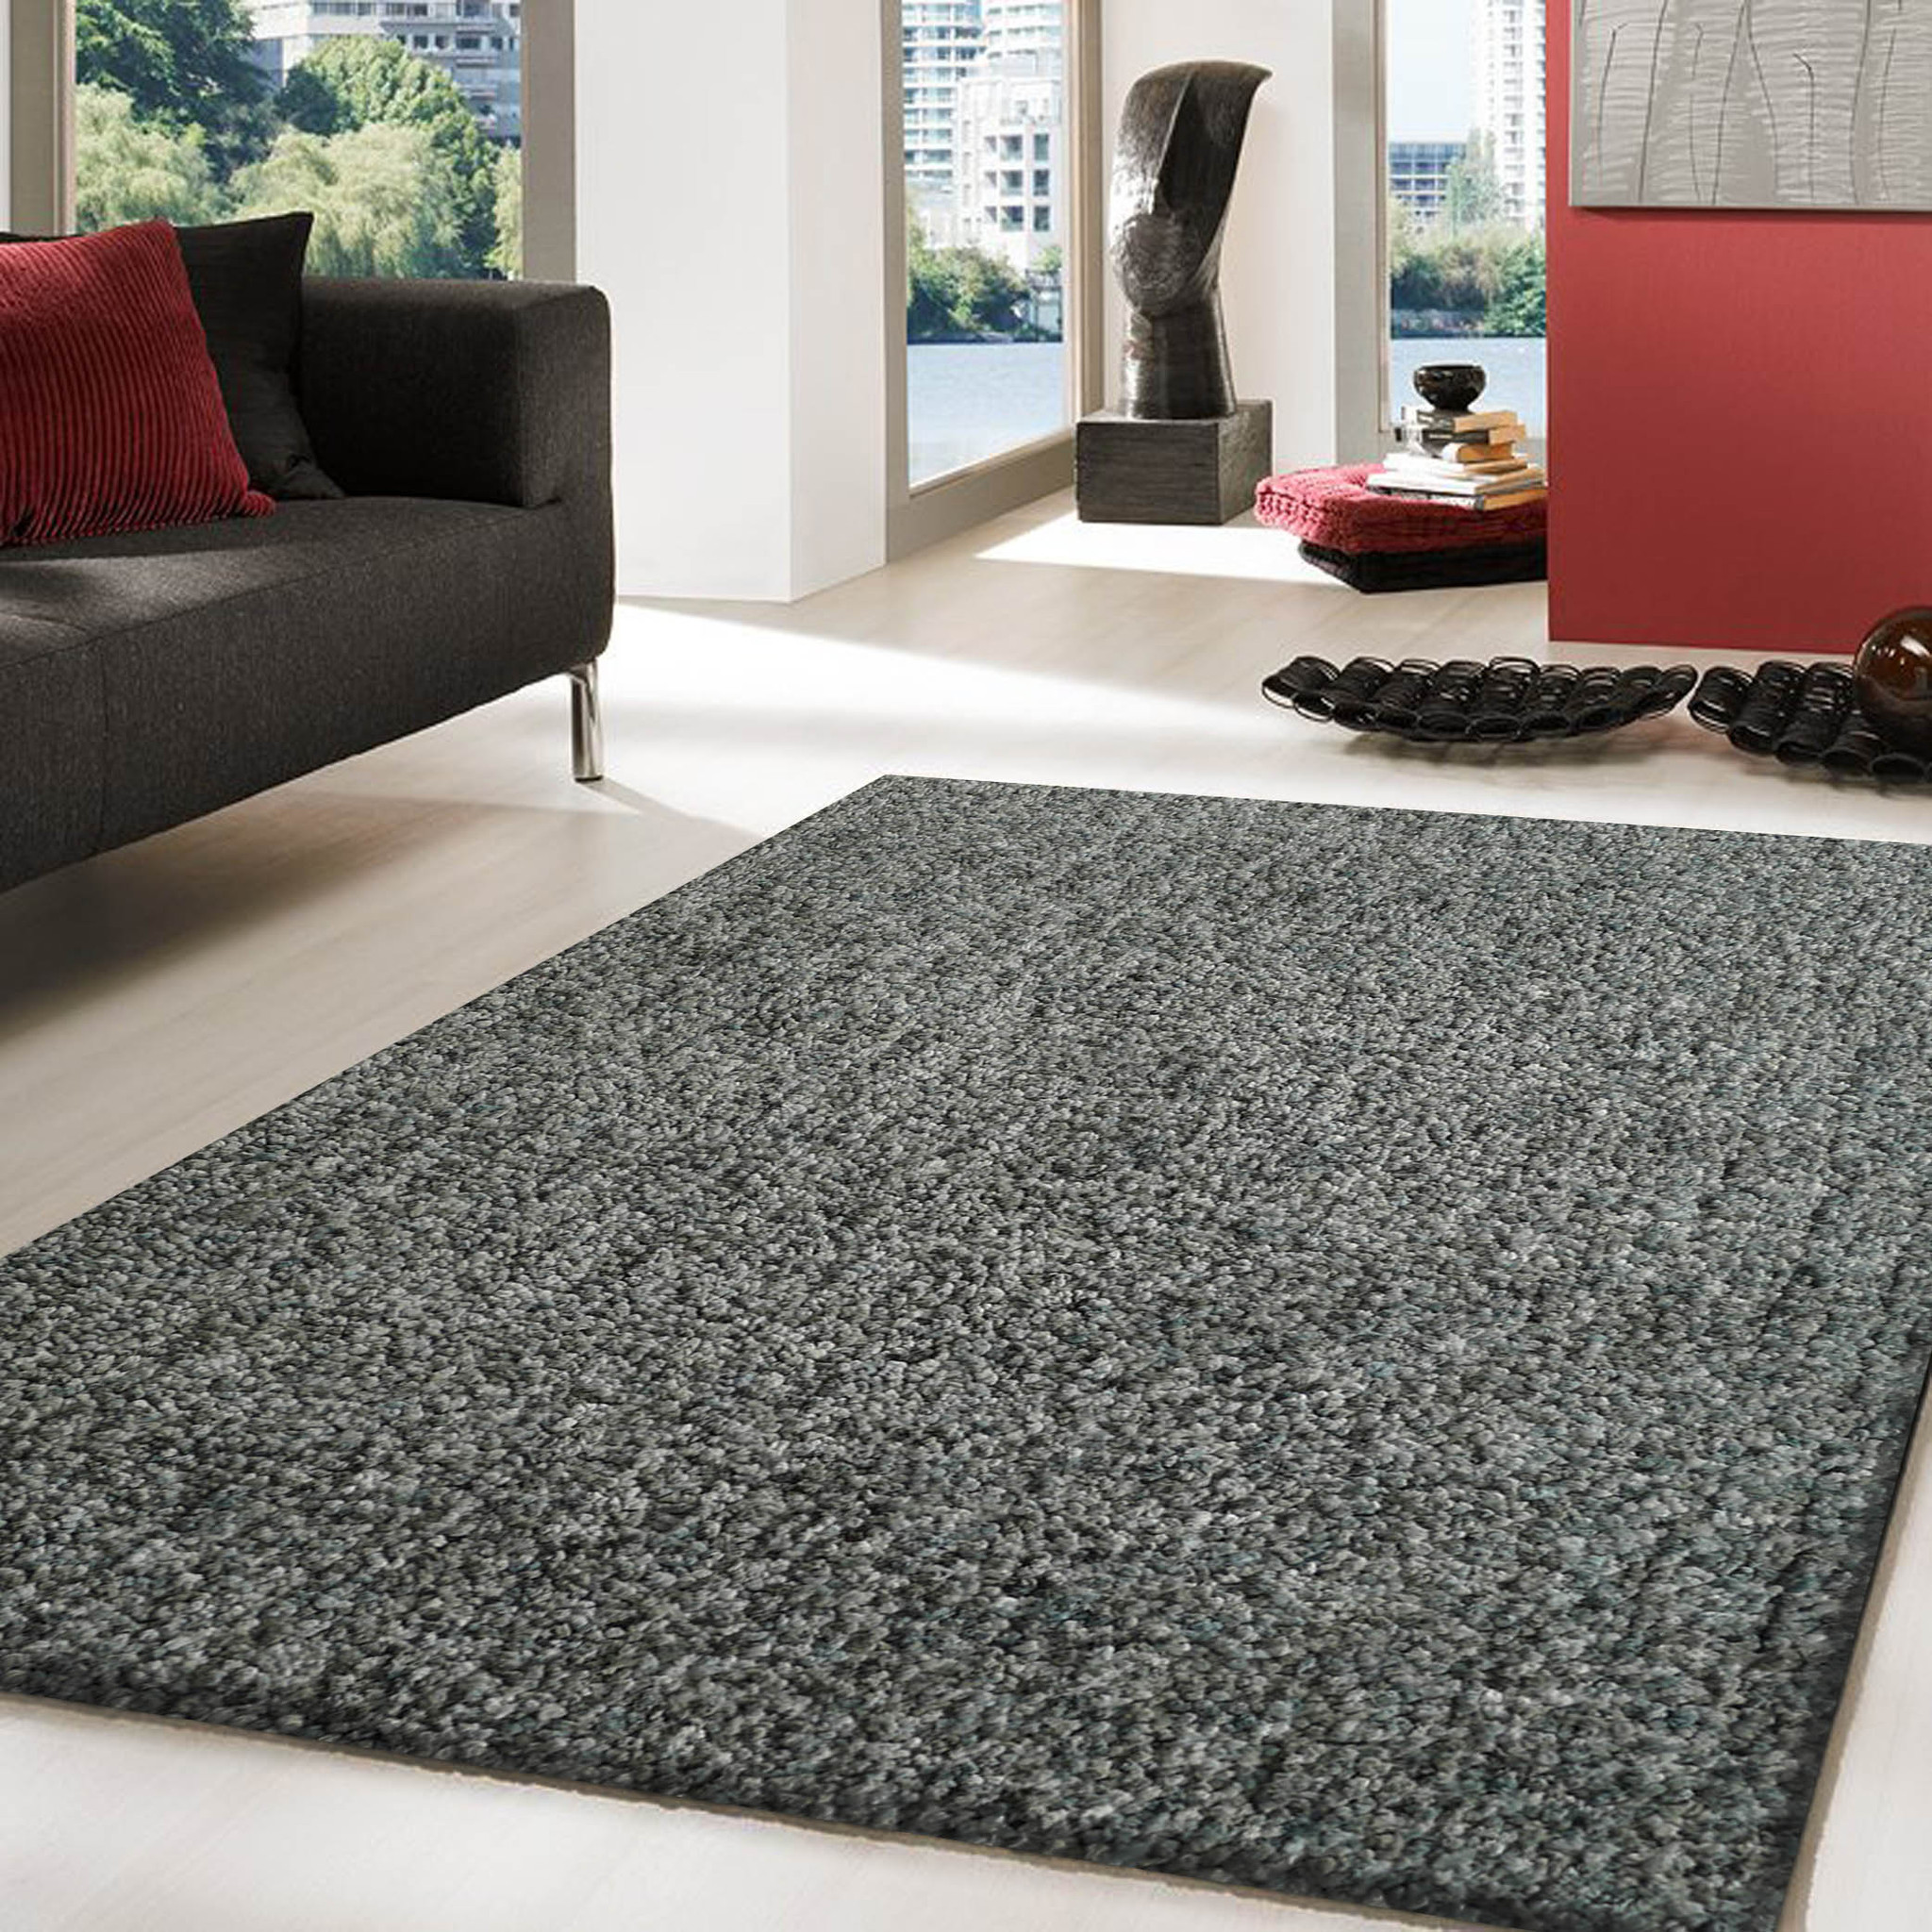 Elegant Hand-tufted 2Tone Blue Thick Plush Shag Area Rug 5u0027 x 7u0027 ft thick plush area rugs